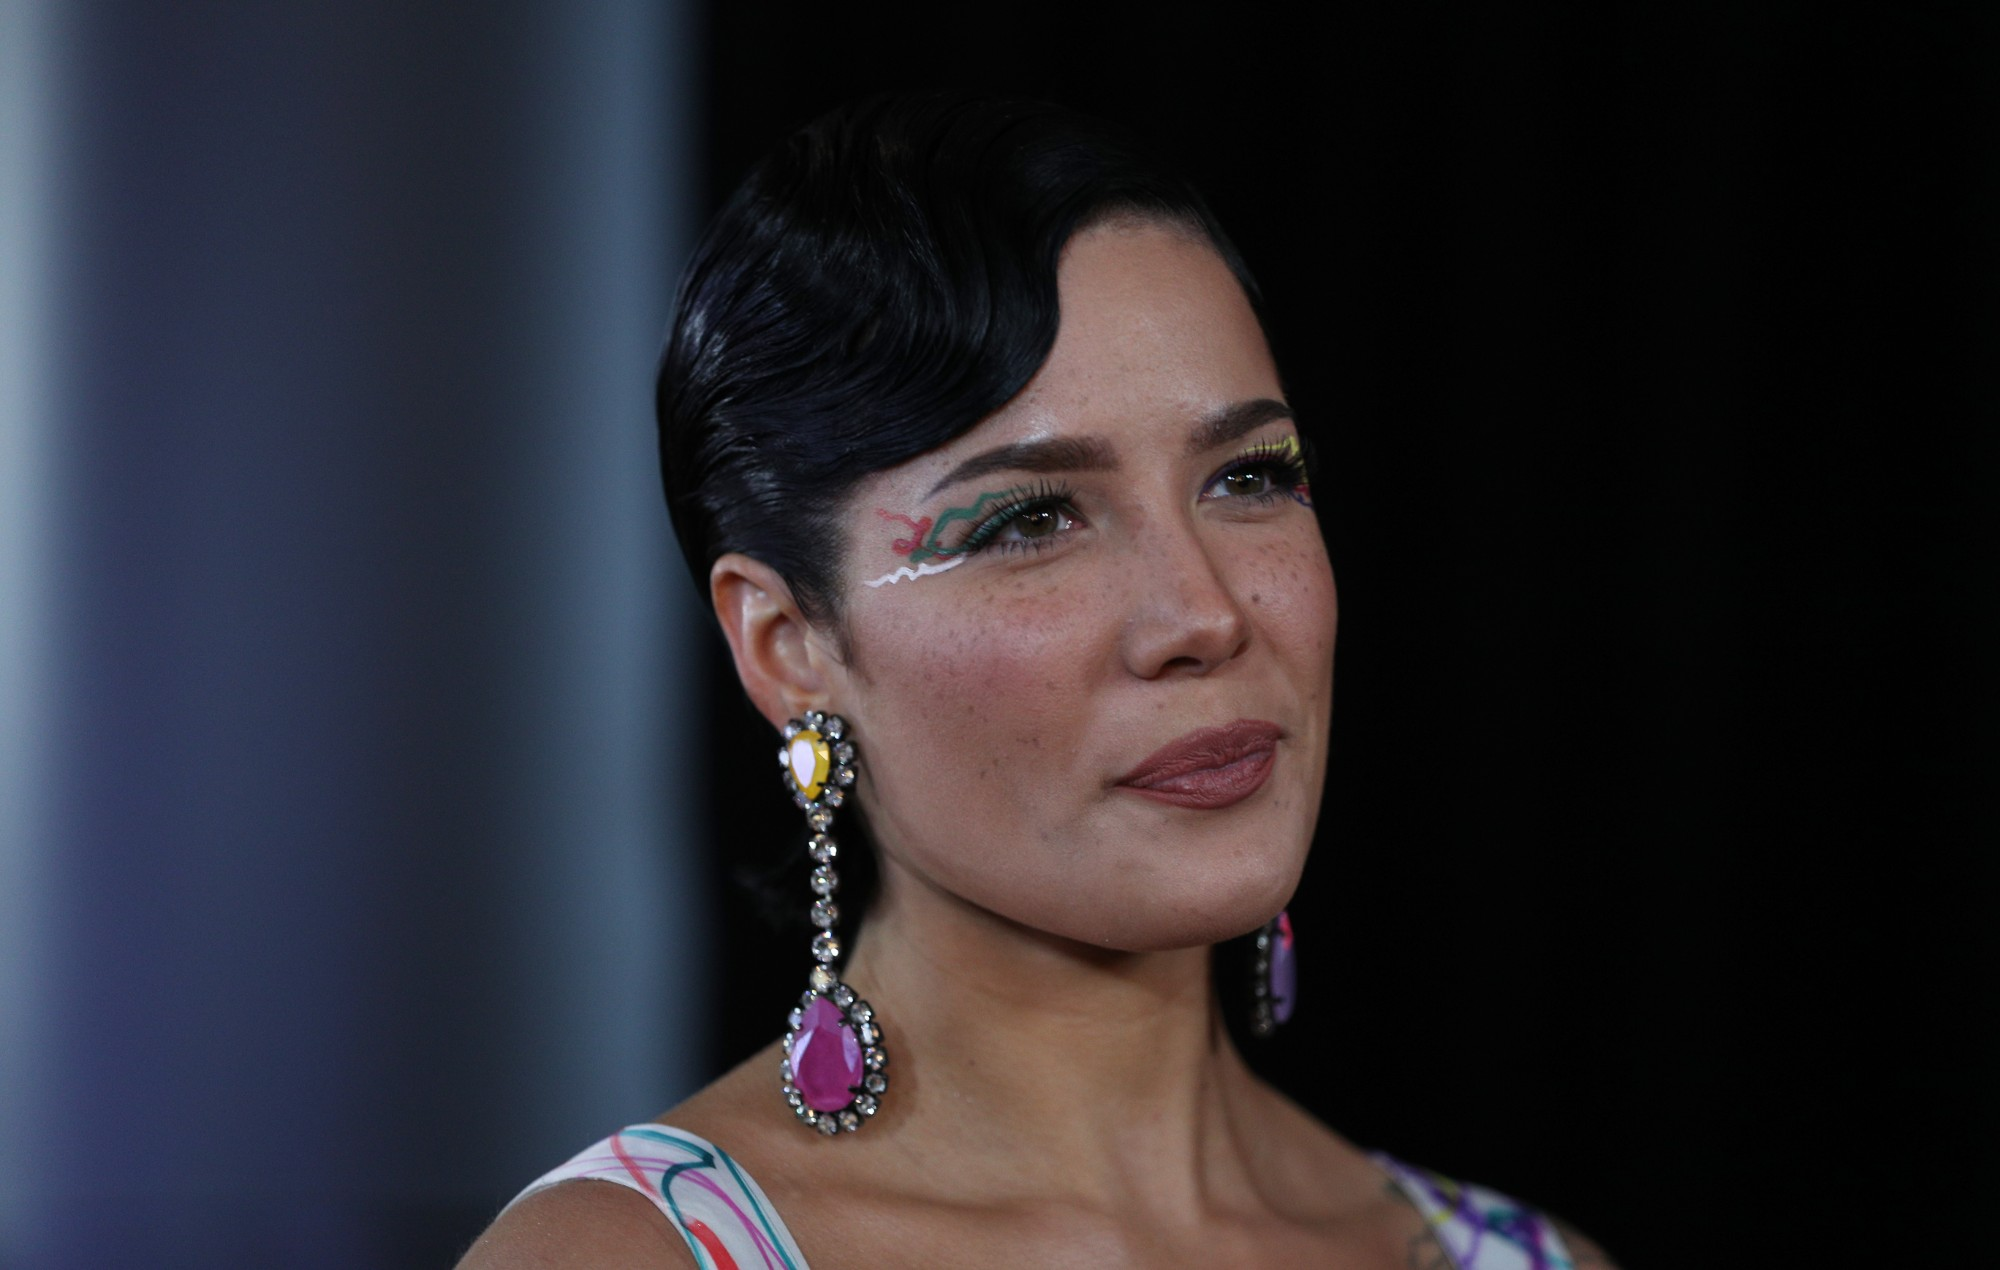 halsey getty images don arnold wireimage